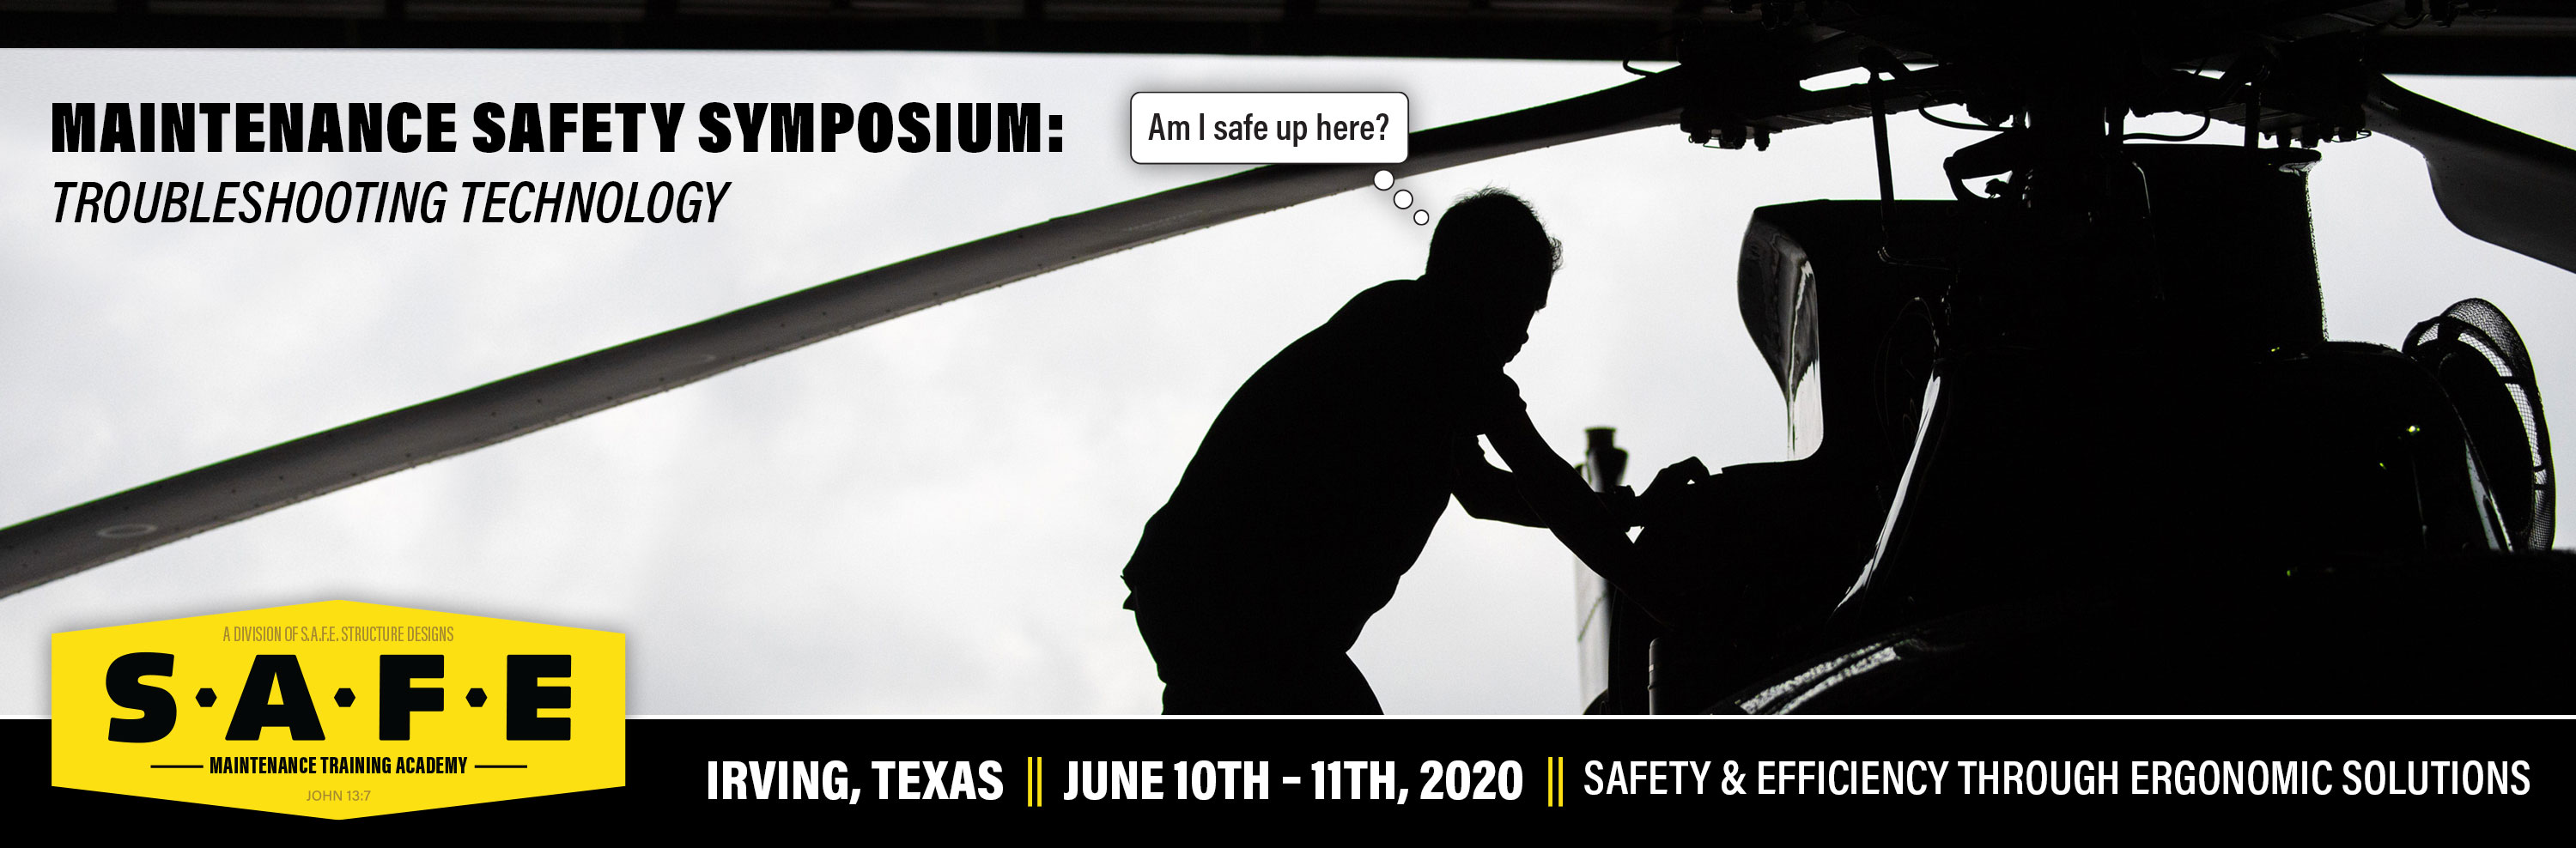 SAFE Training Symposium - Troubleshooting Technology